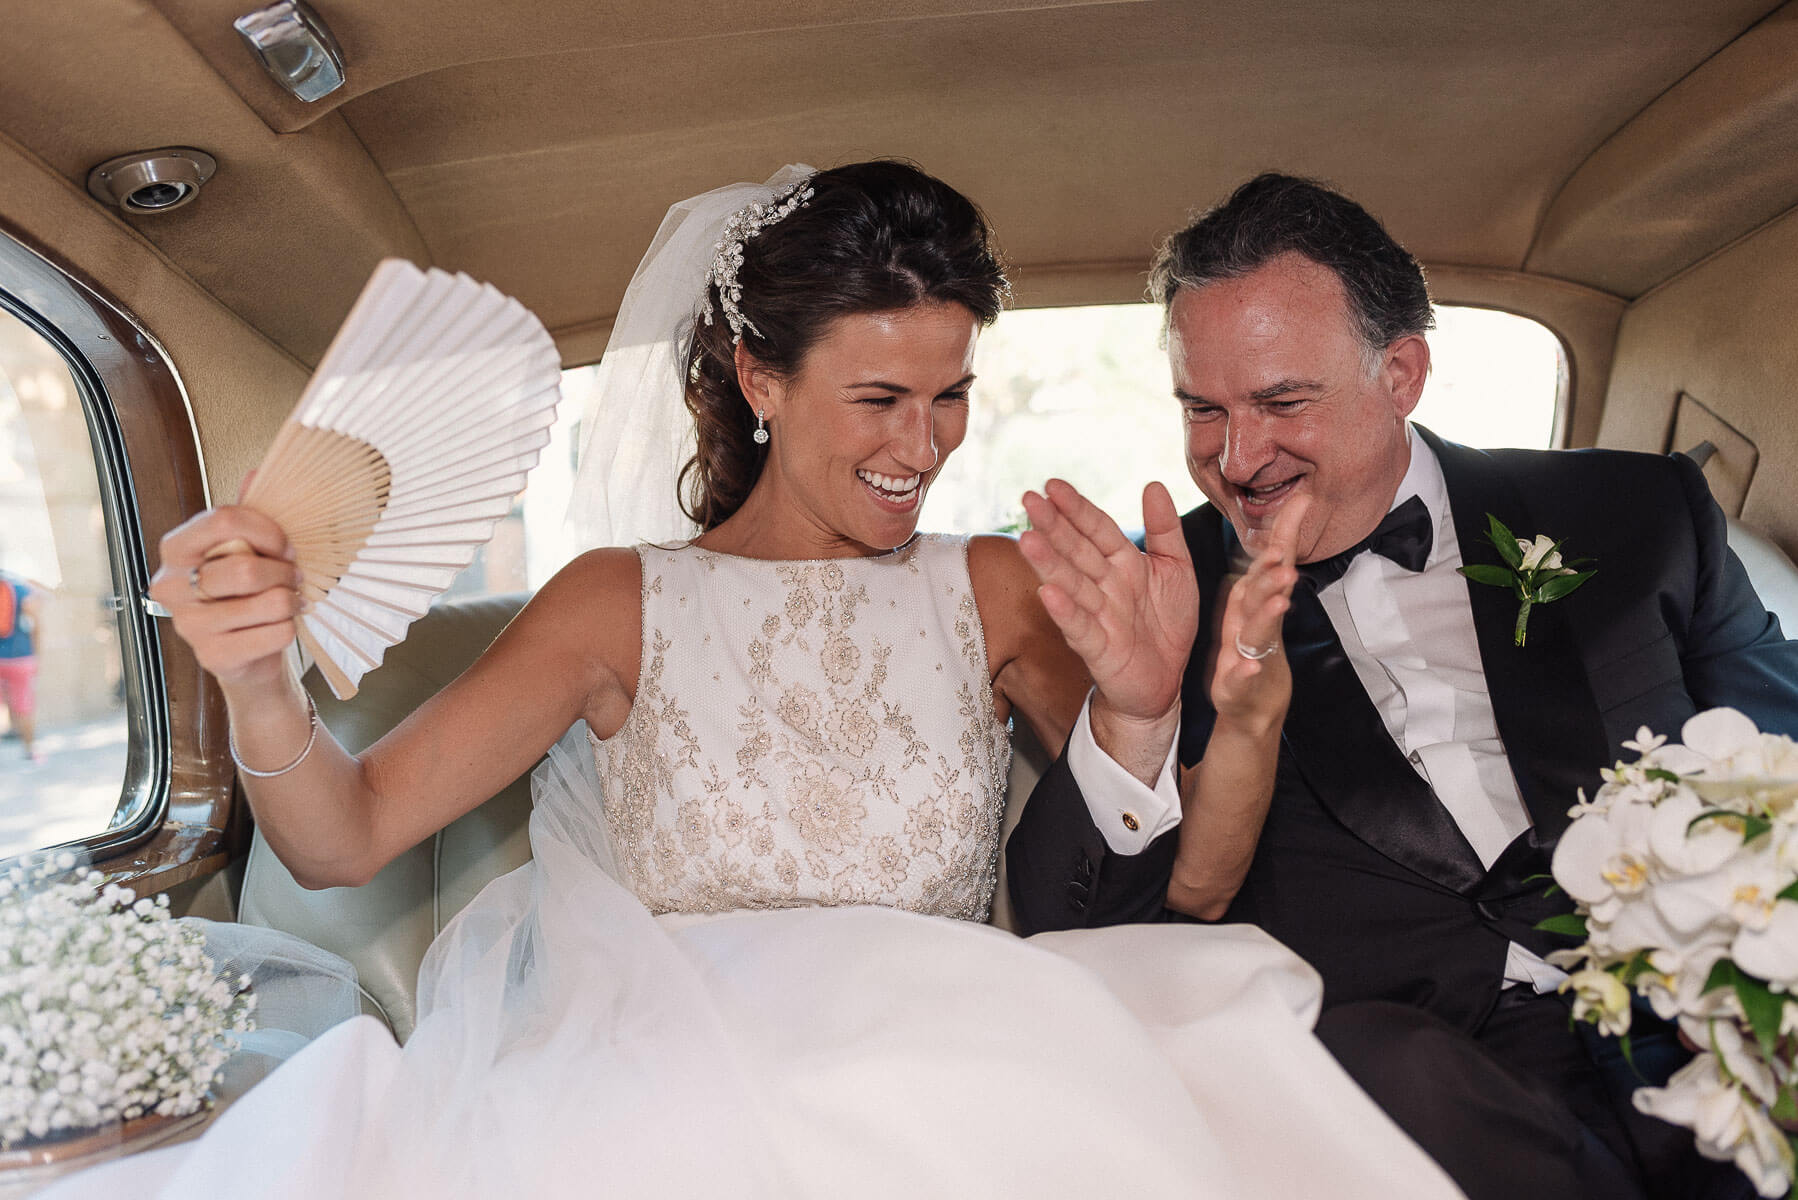 Boda Cris & Juanca novia y padre | Manel Tamayo, Wedding photographer